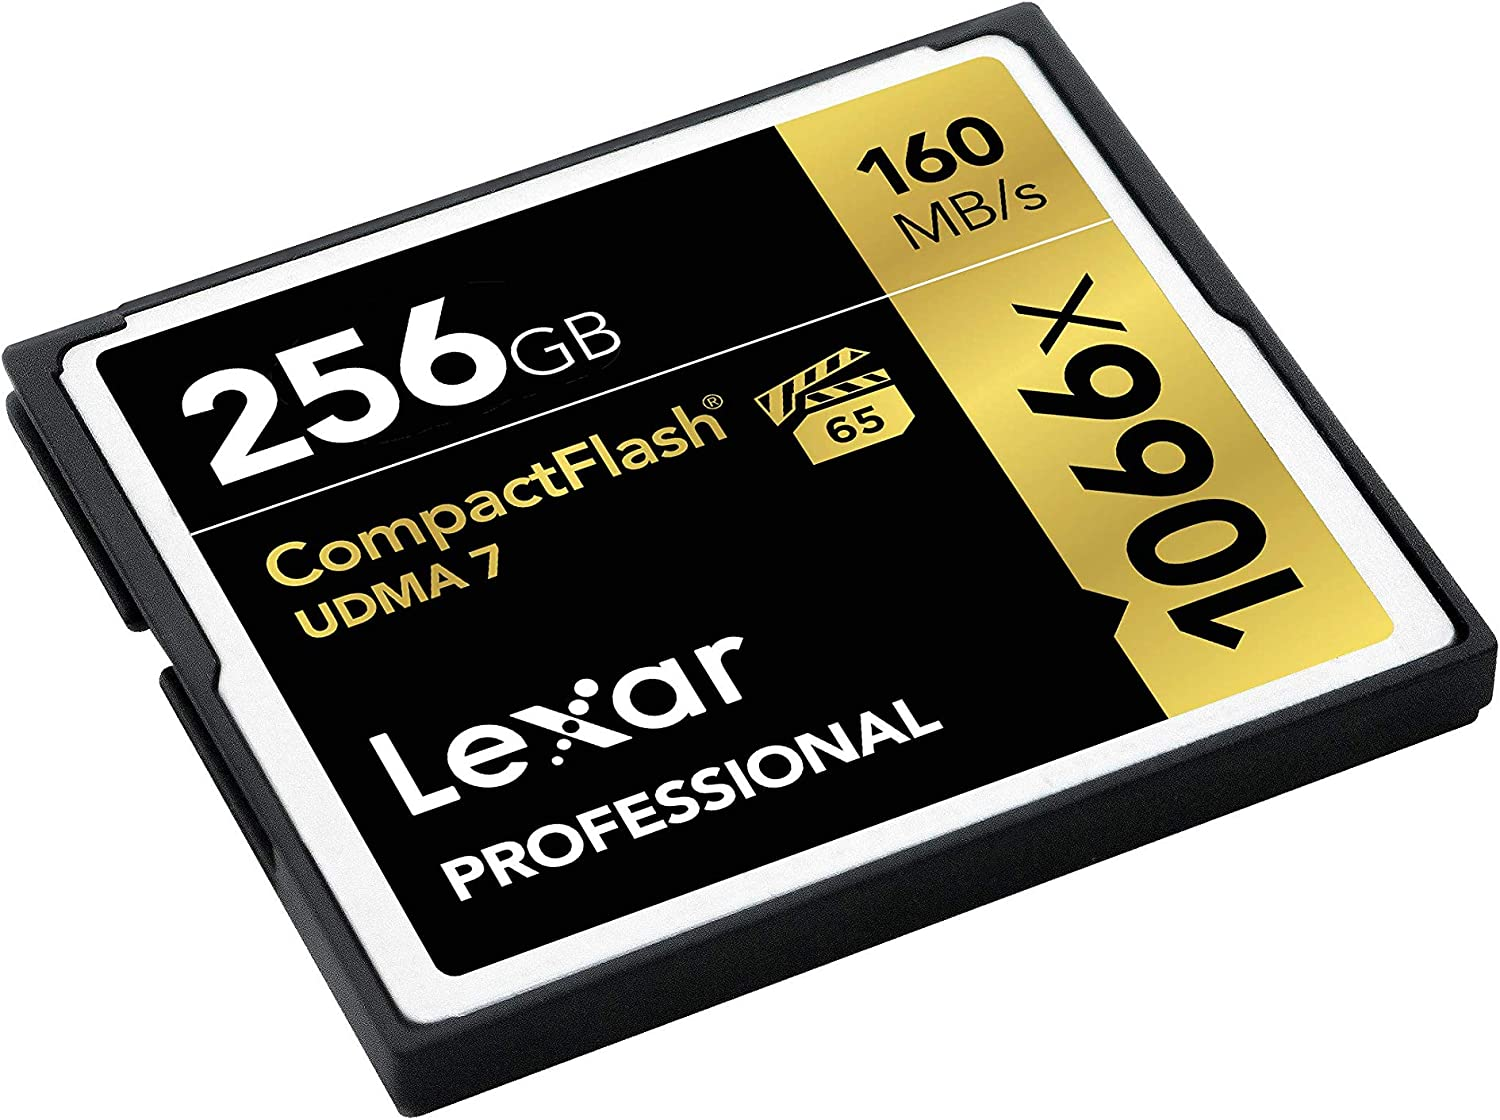 Lexar Professional 1066 x 256GB VPG-65 CompactFlash card (Up to 160MB/s Read) LCF256CRBNA1066